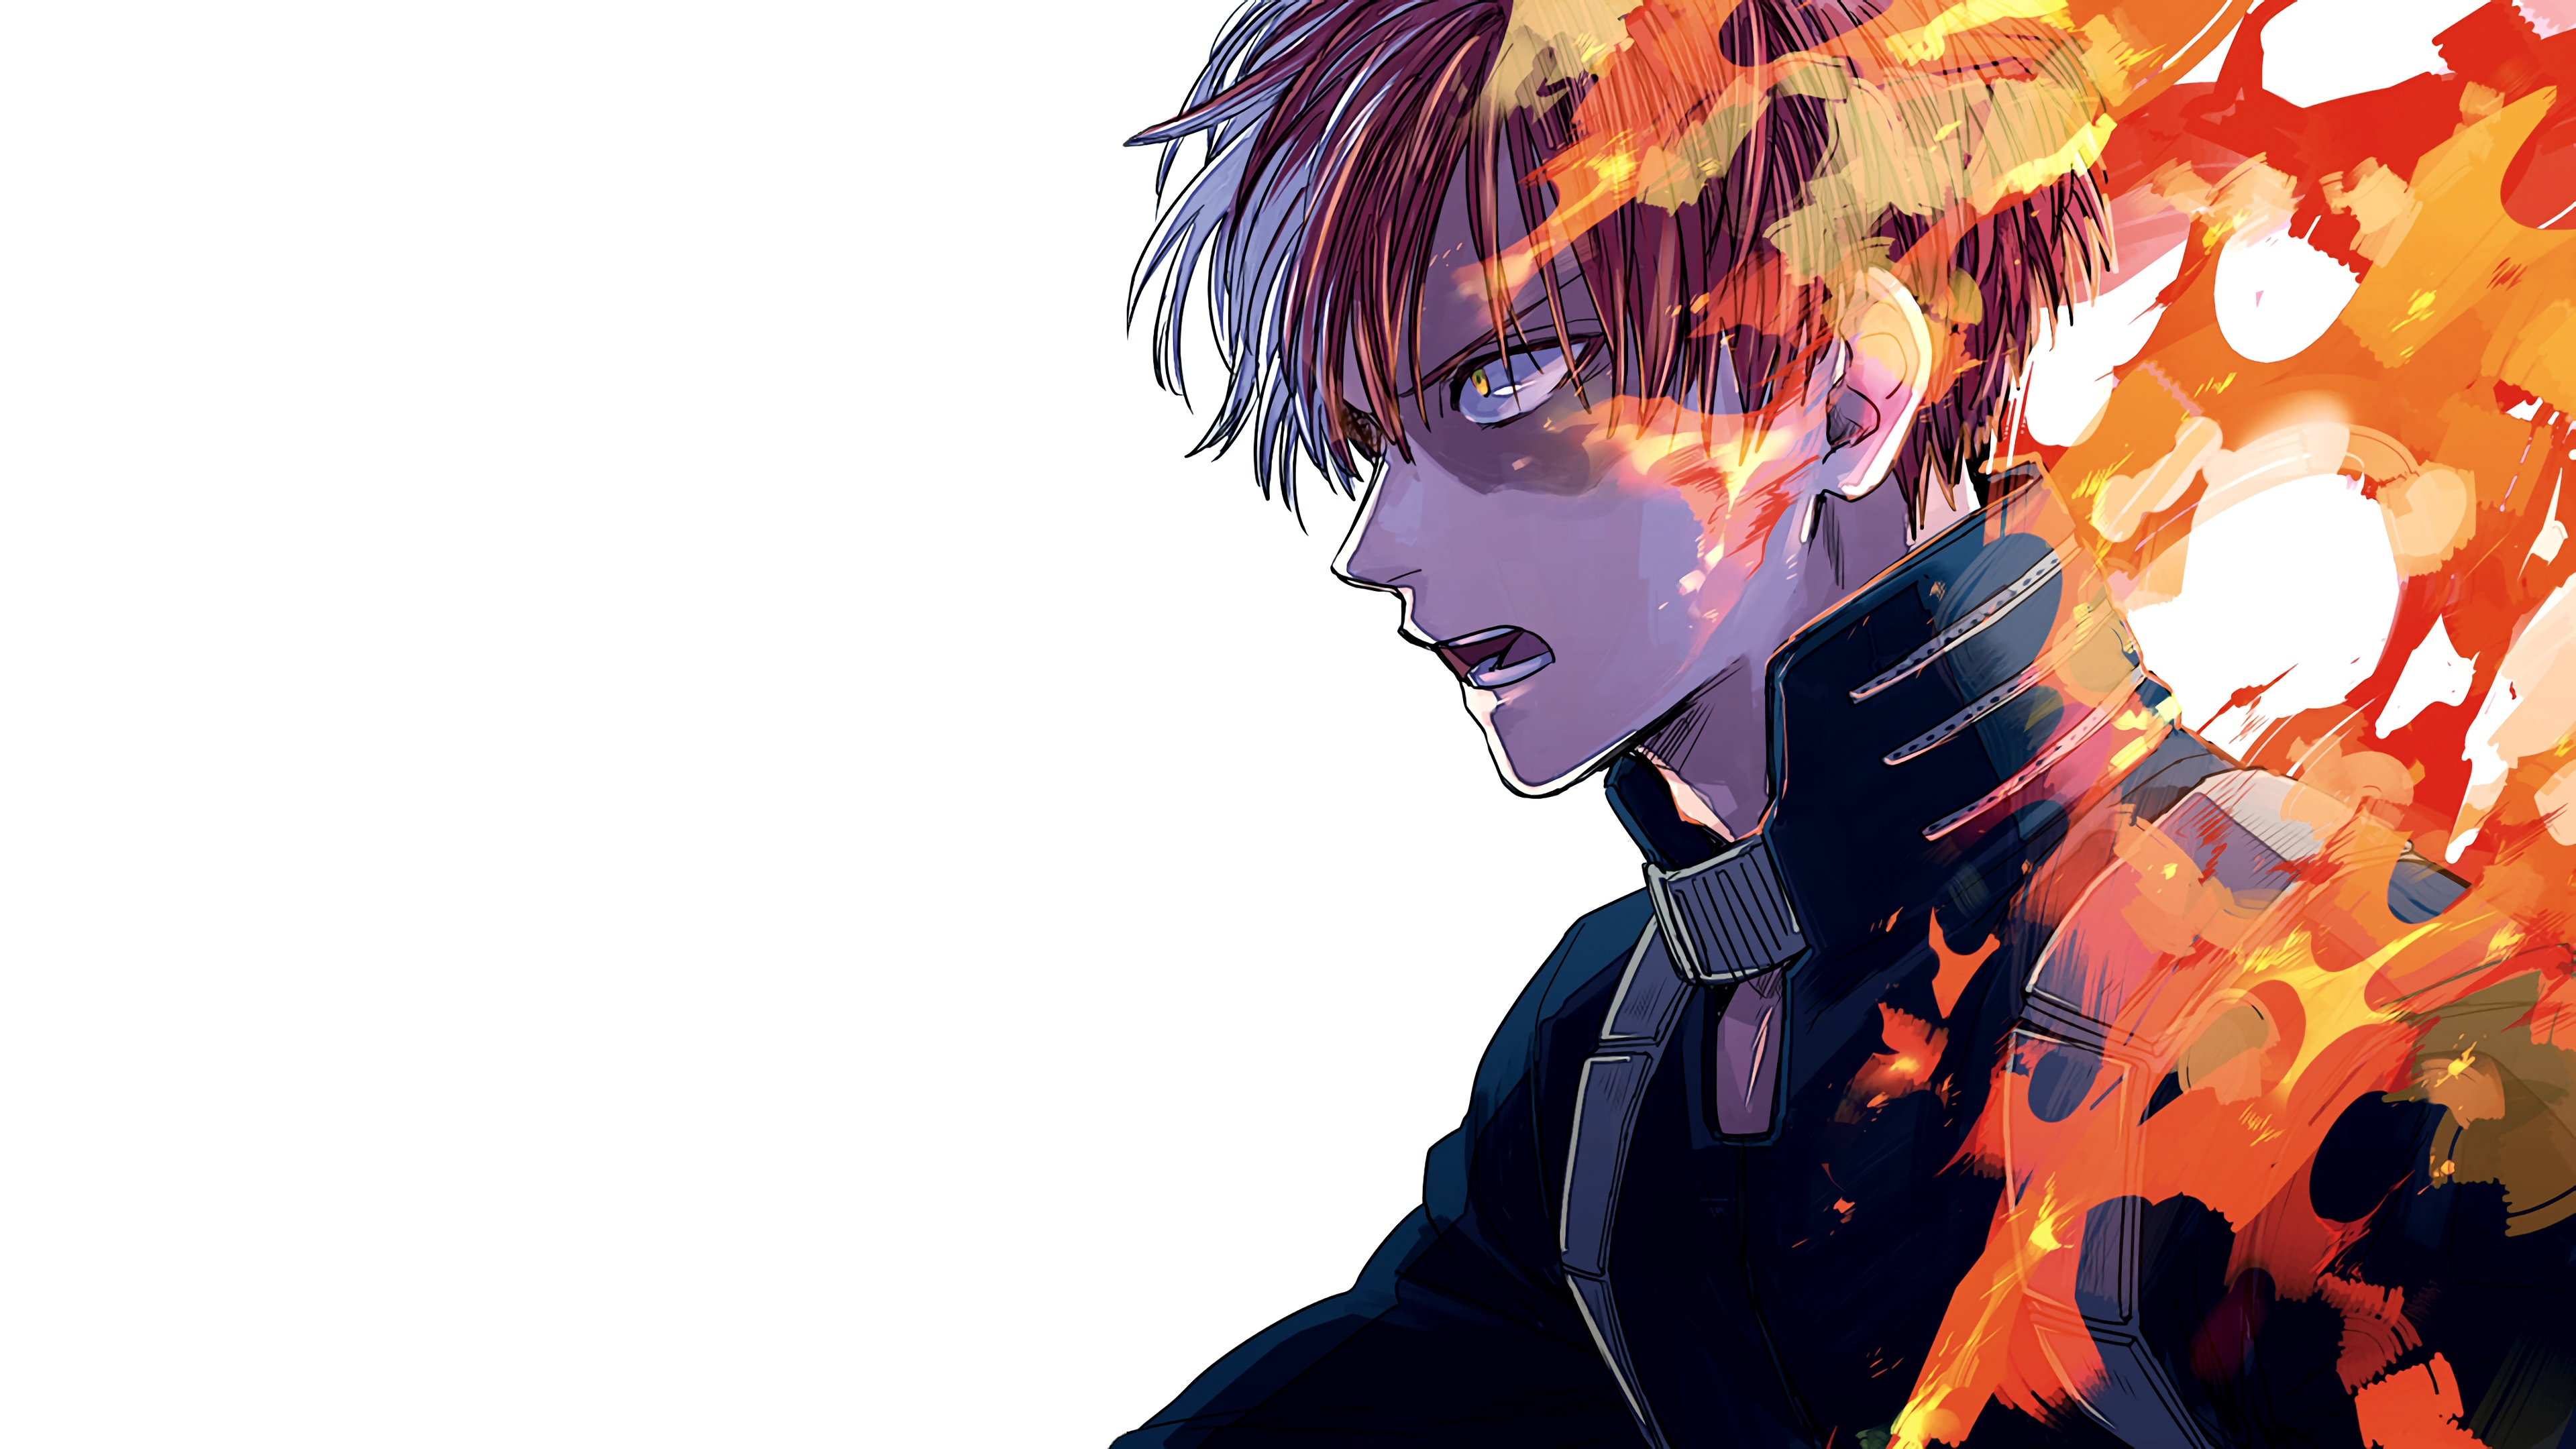 Shoto Todoroki My Hero Academia Anime Wallpaper 4k Ultra Hd Id 3368